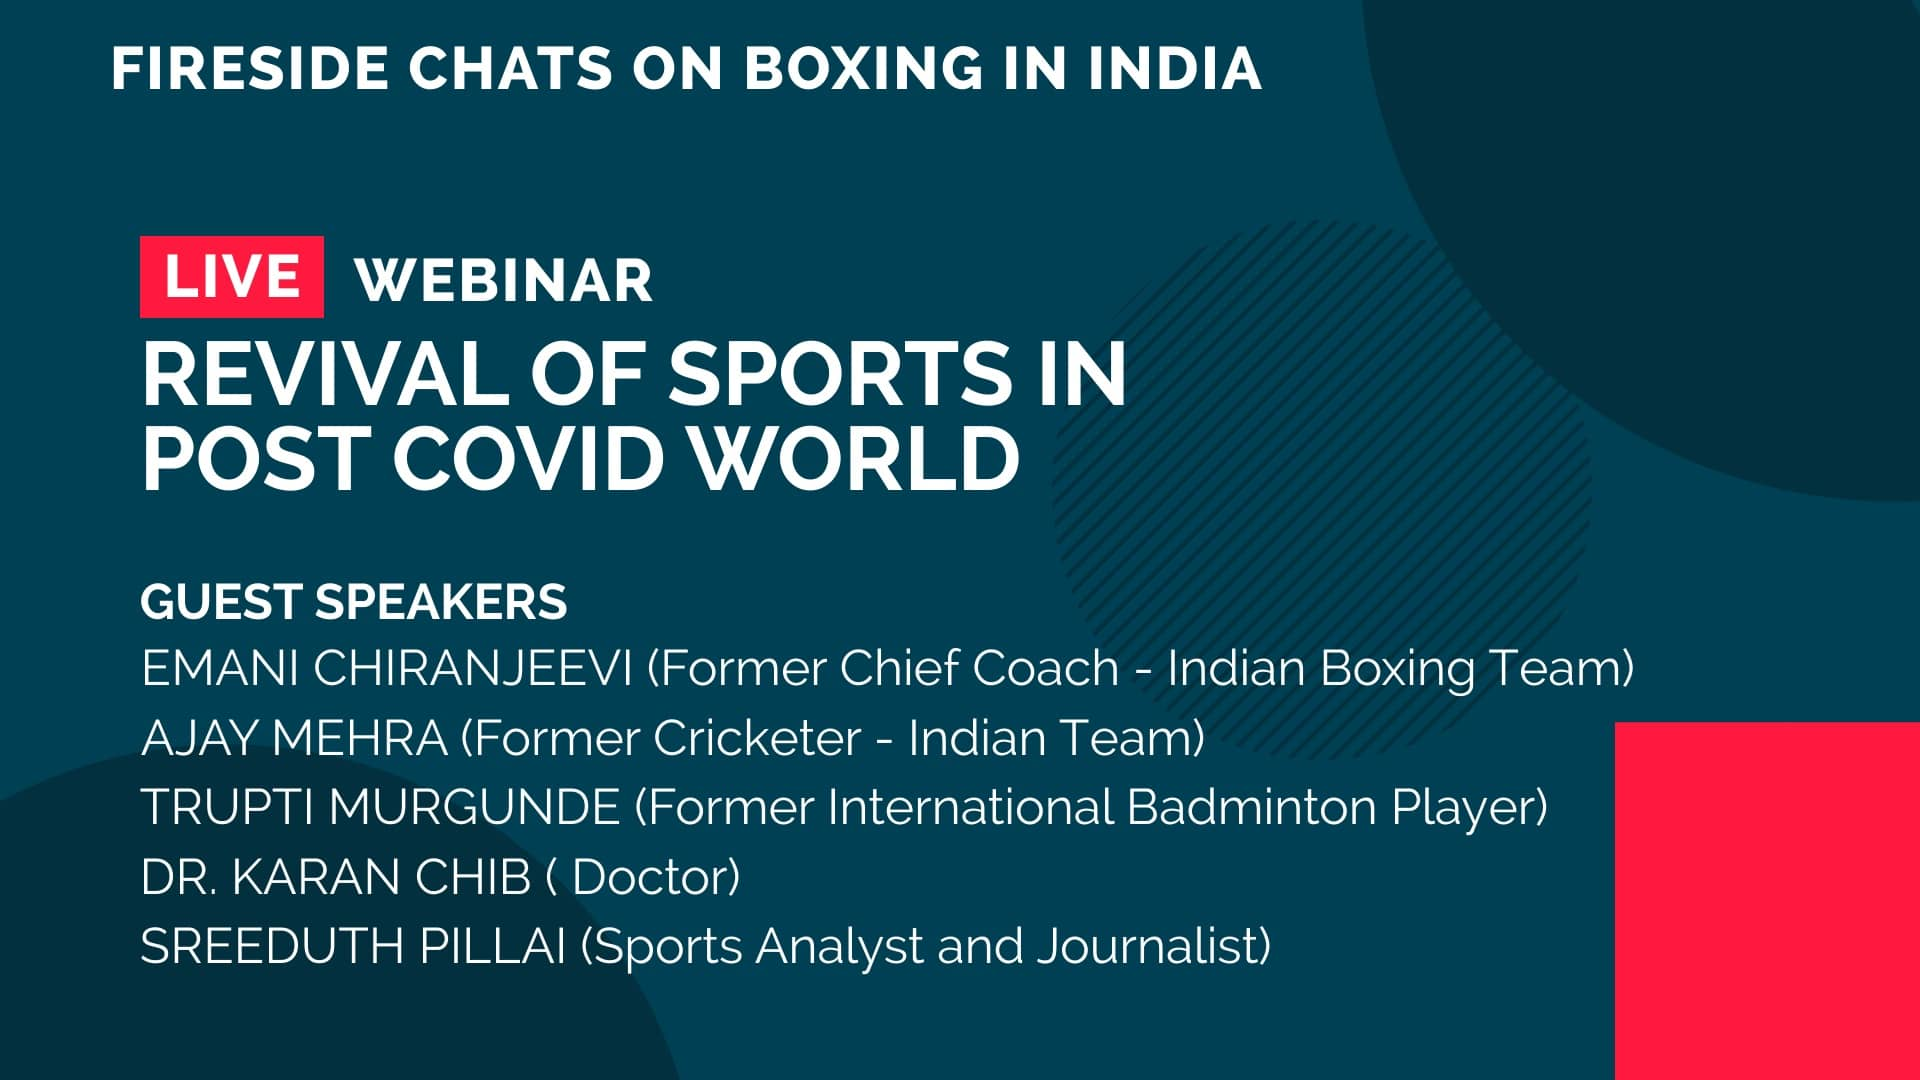 Fireside-Chats-on-Boxing-in-India-Revival-of-sports